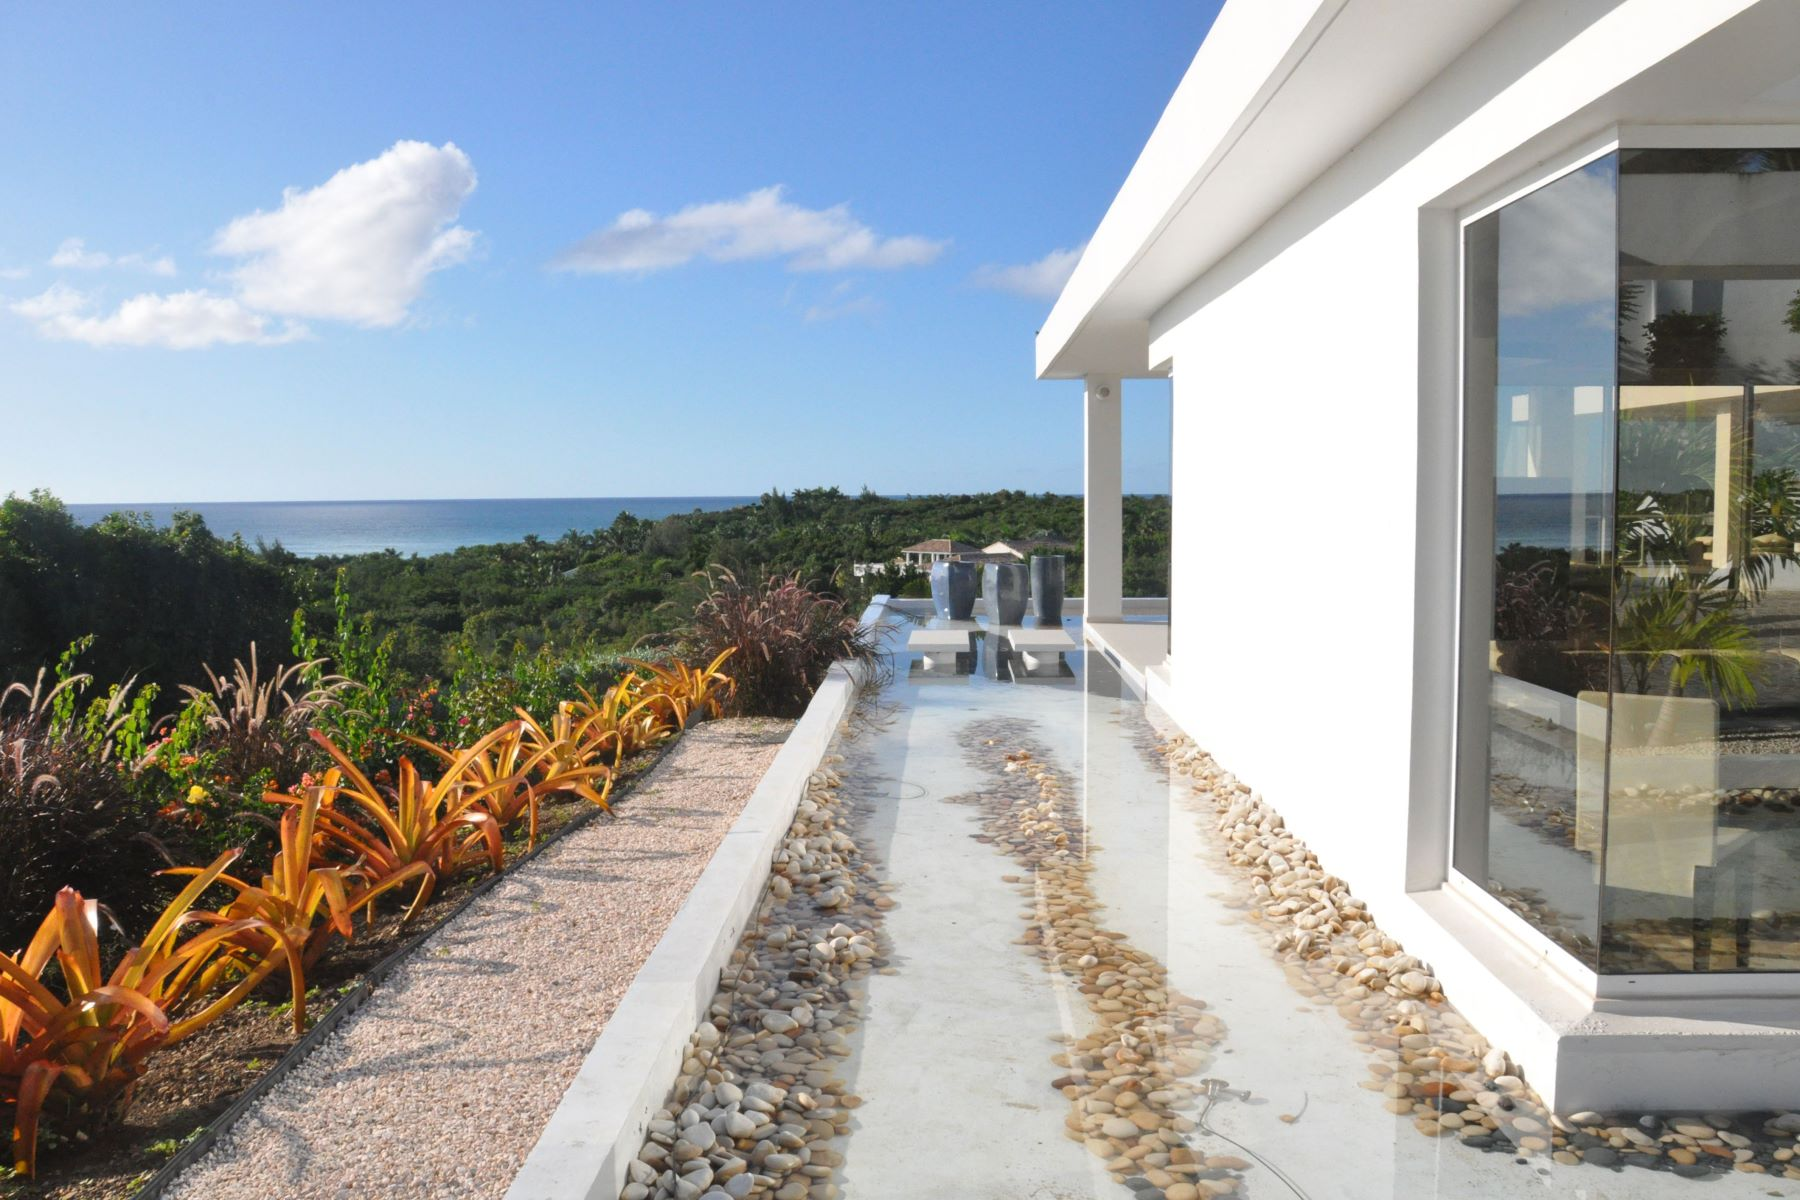 Single Family Home for Sale at Grand Bleu Terres Basses, Cities In Saint Martin 97150 St. Martin